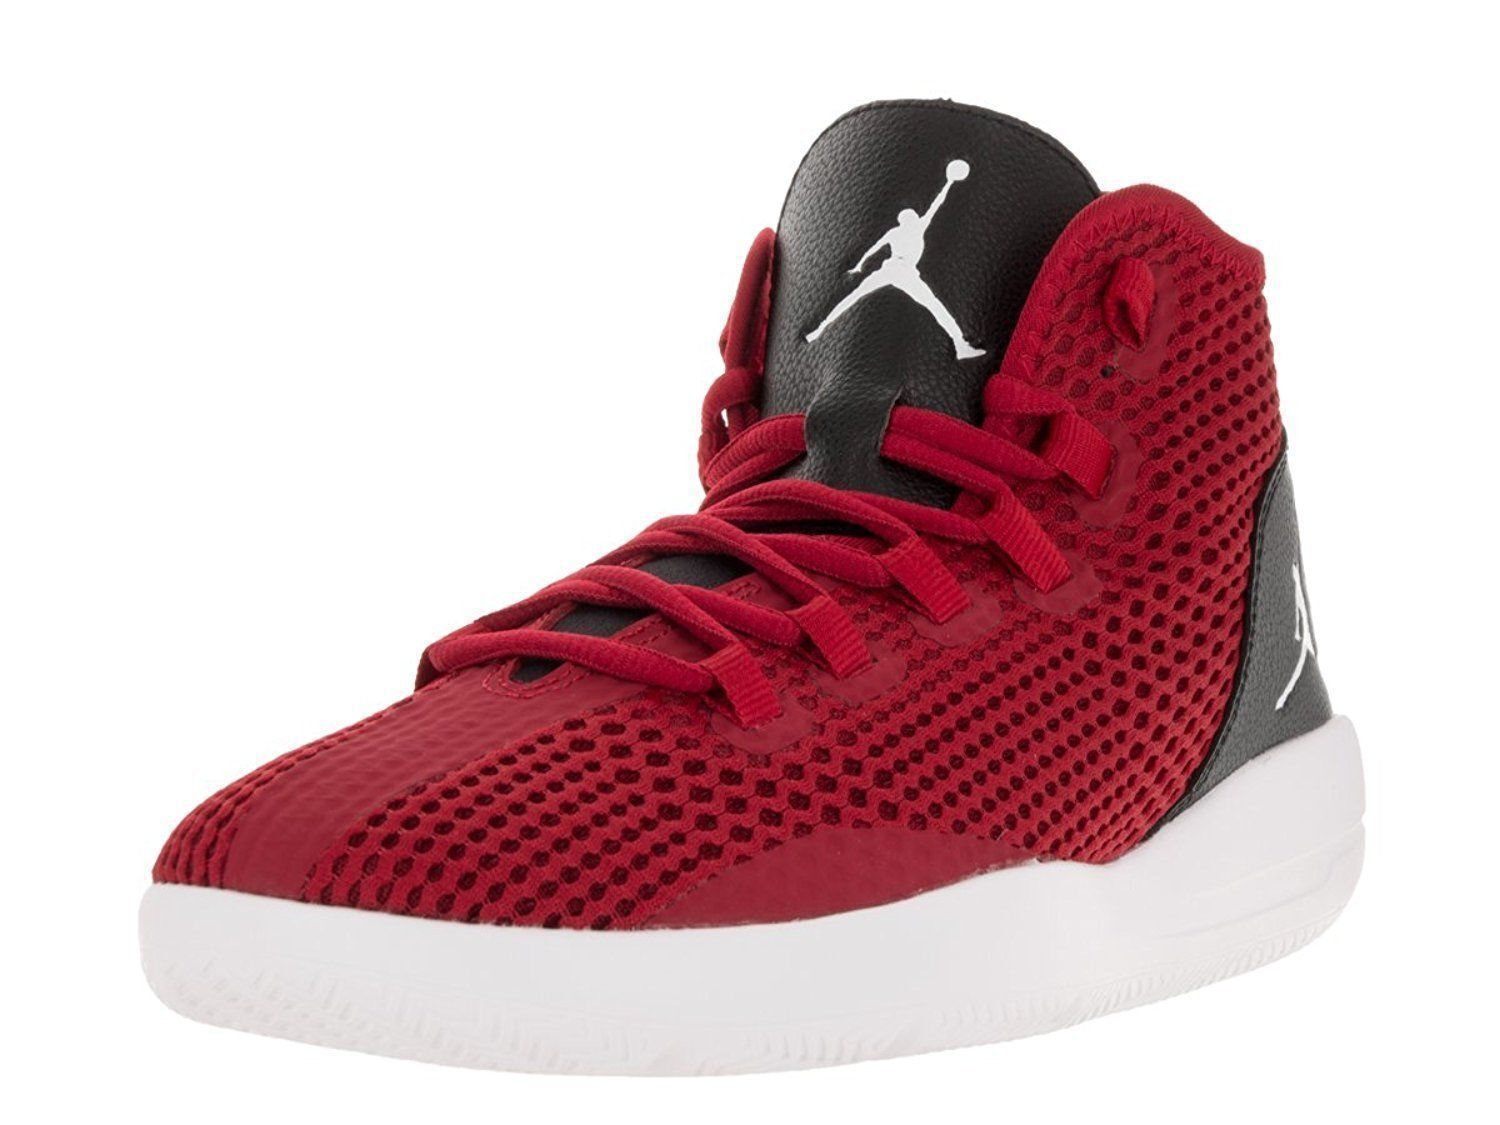 Nike Jordan Reveal Men's Sneakers Shoes Gym Red Black 834064 605 Sz 10.5, 11.5